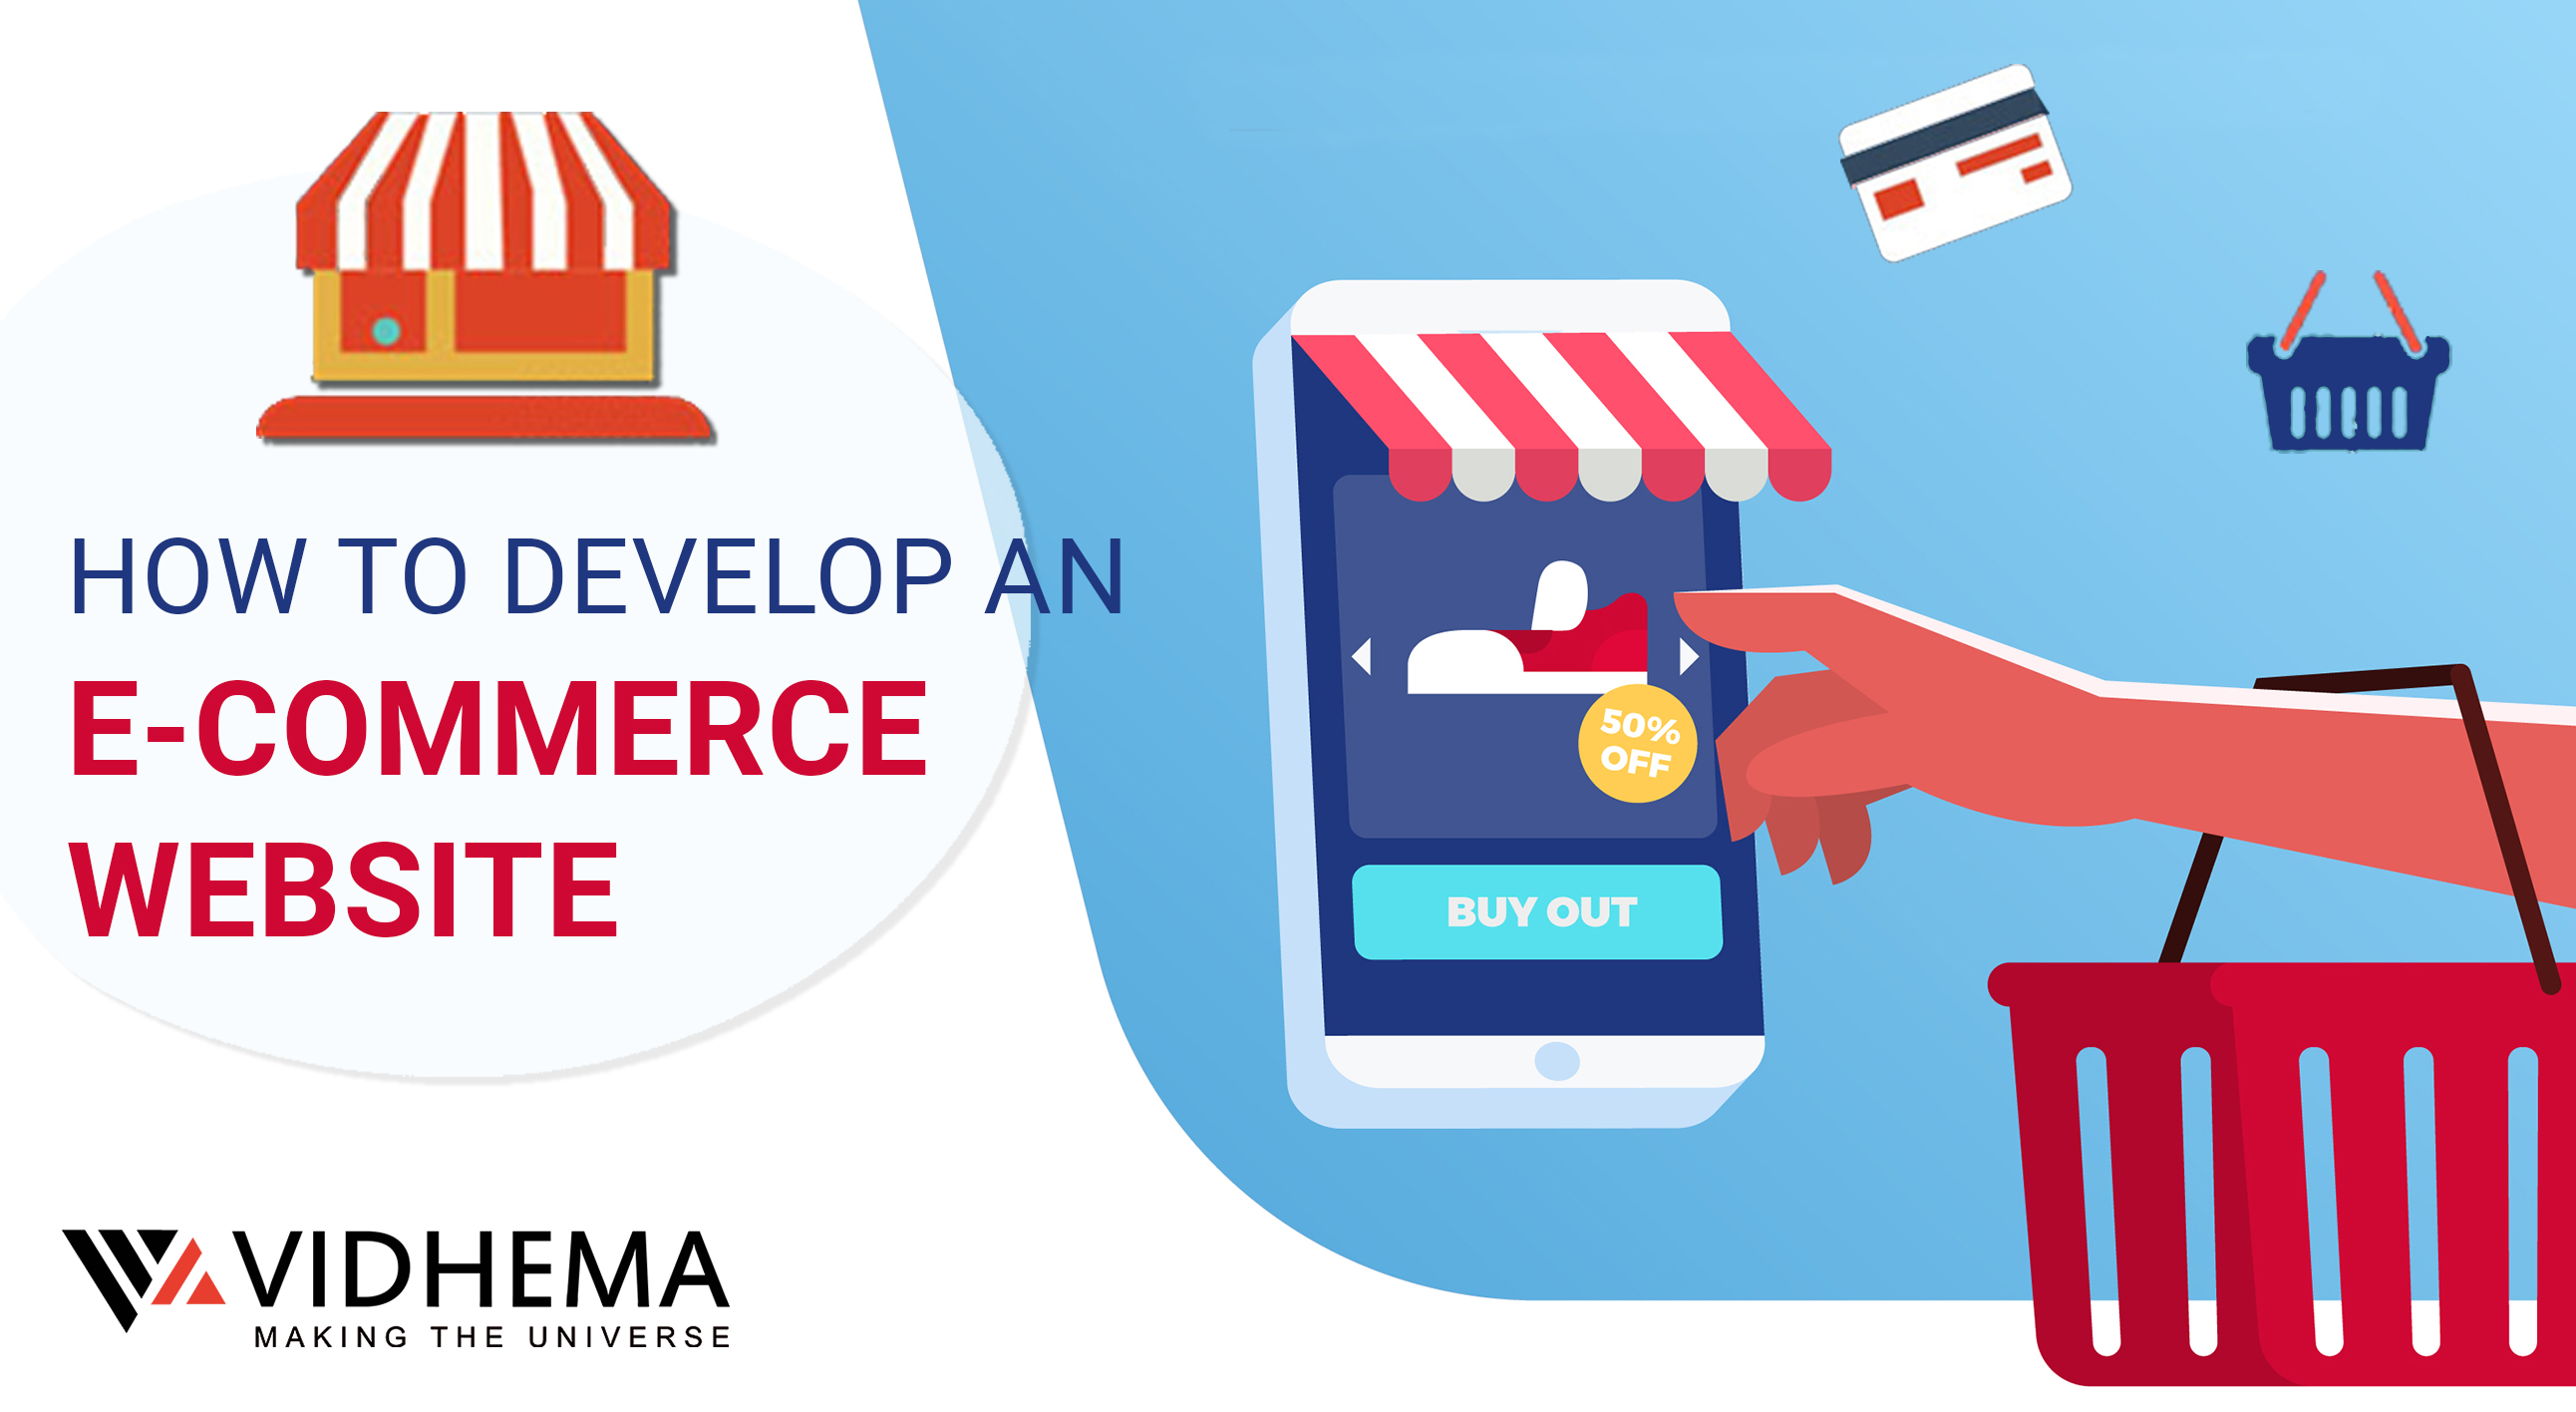 HOW TO DEVELOP AN E-COMMERCE WEBSITE